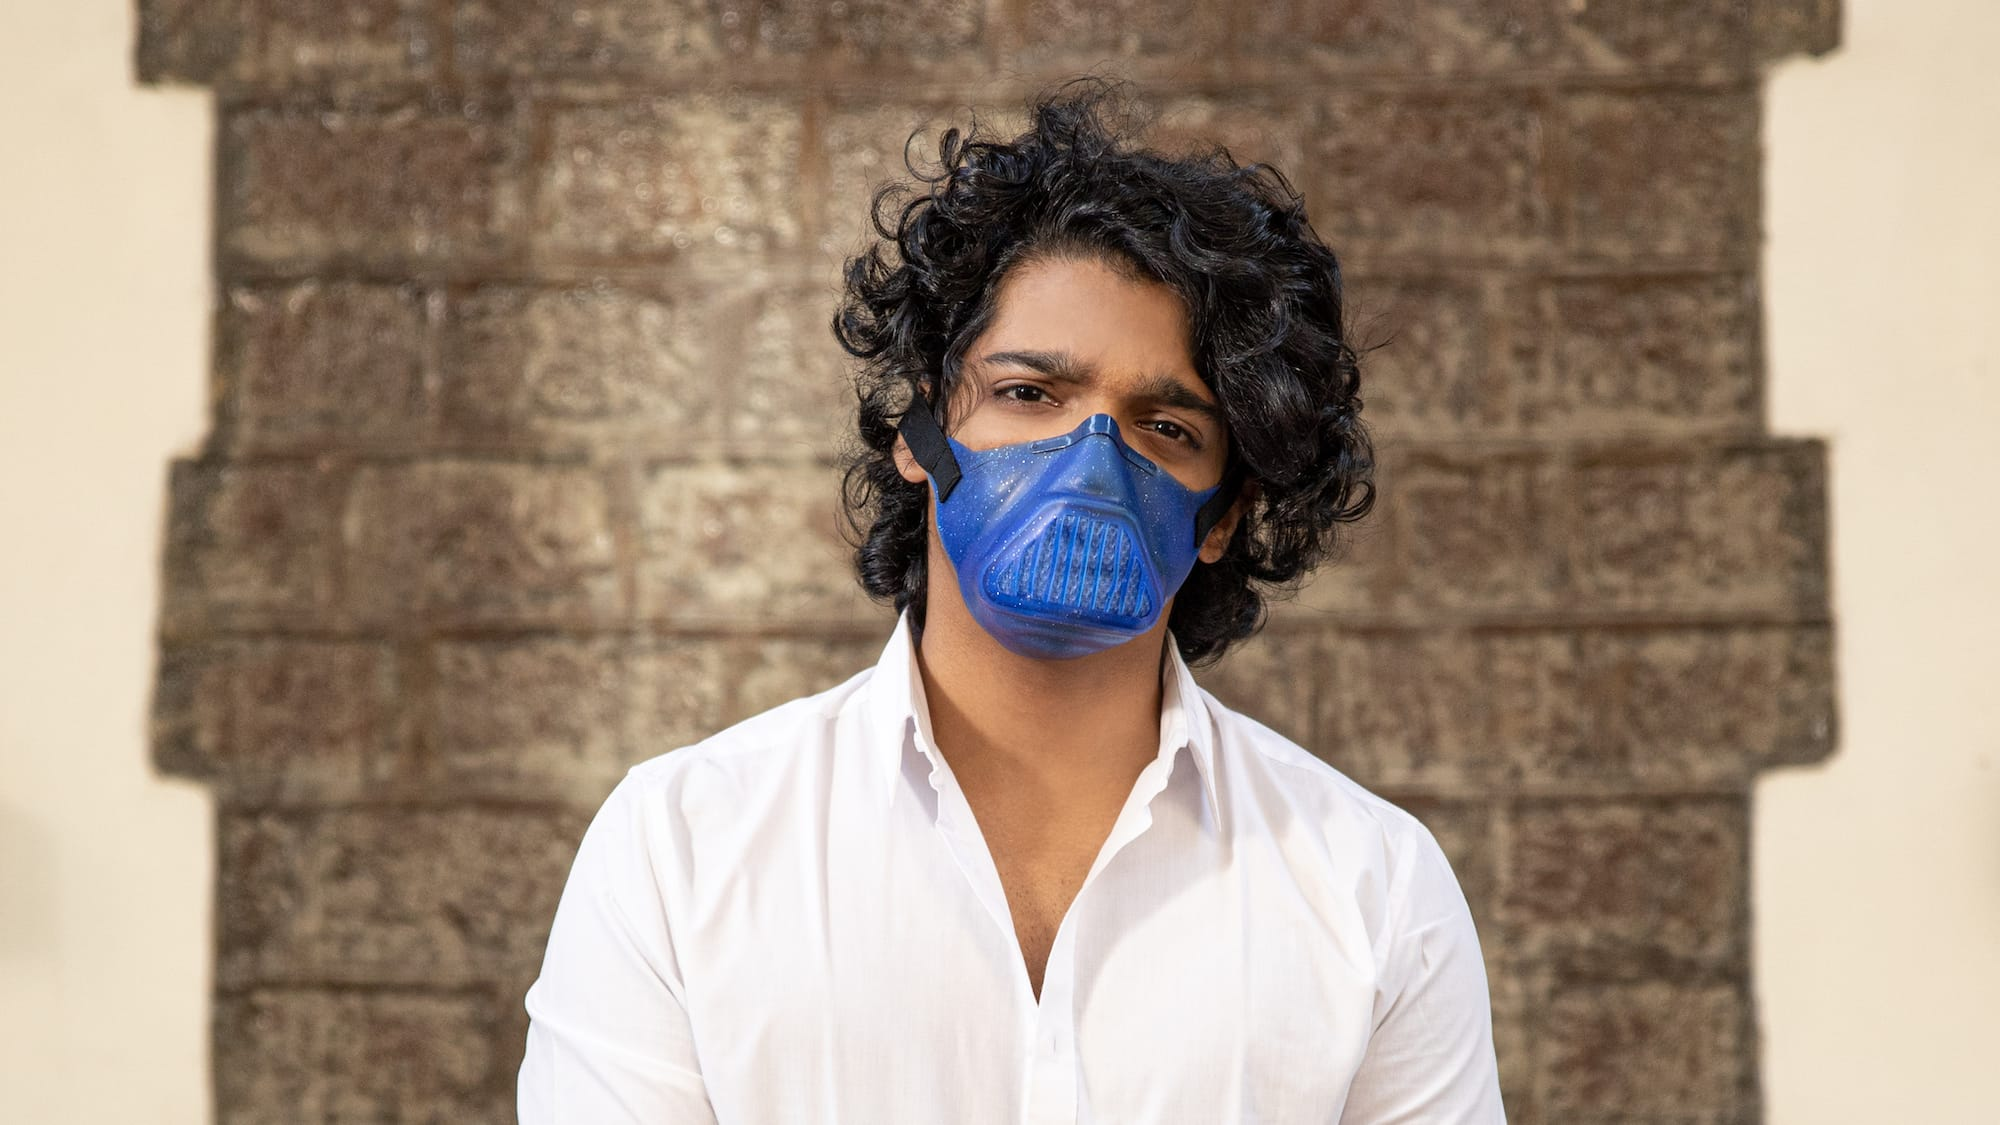 One Air Plus reusable mask is the face mask for a new normal